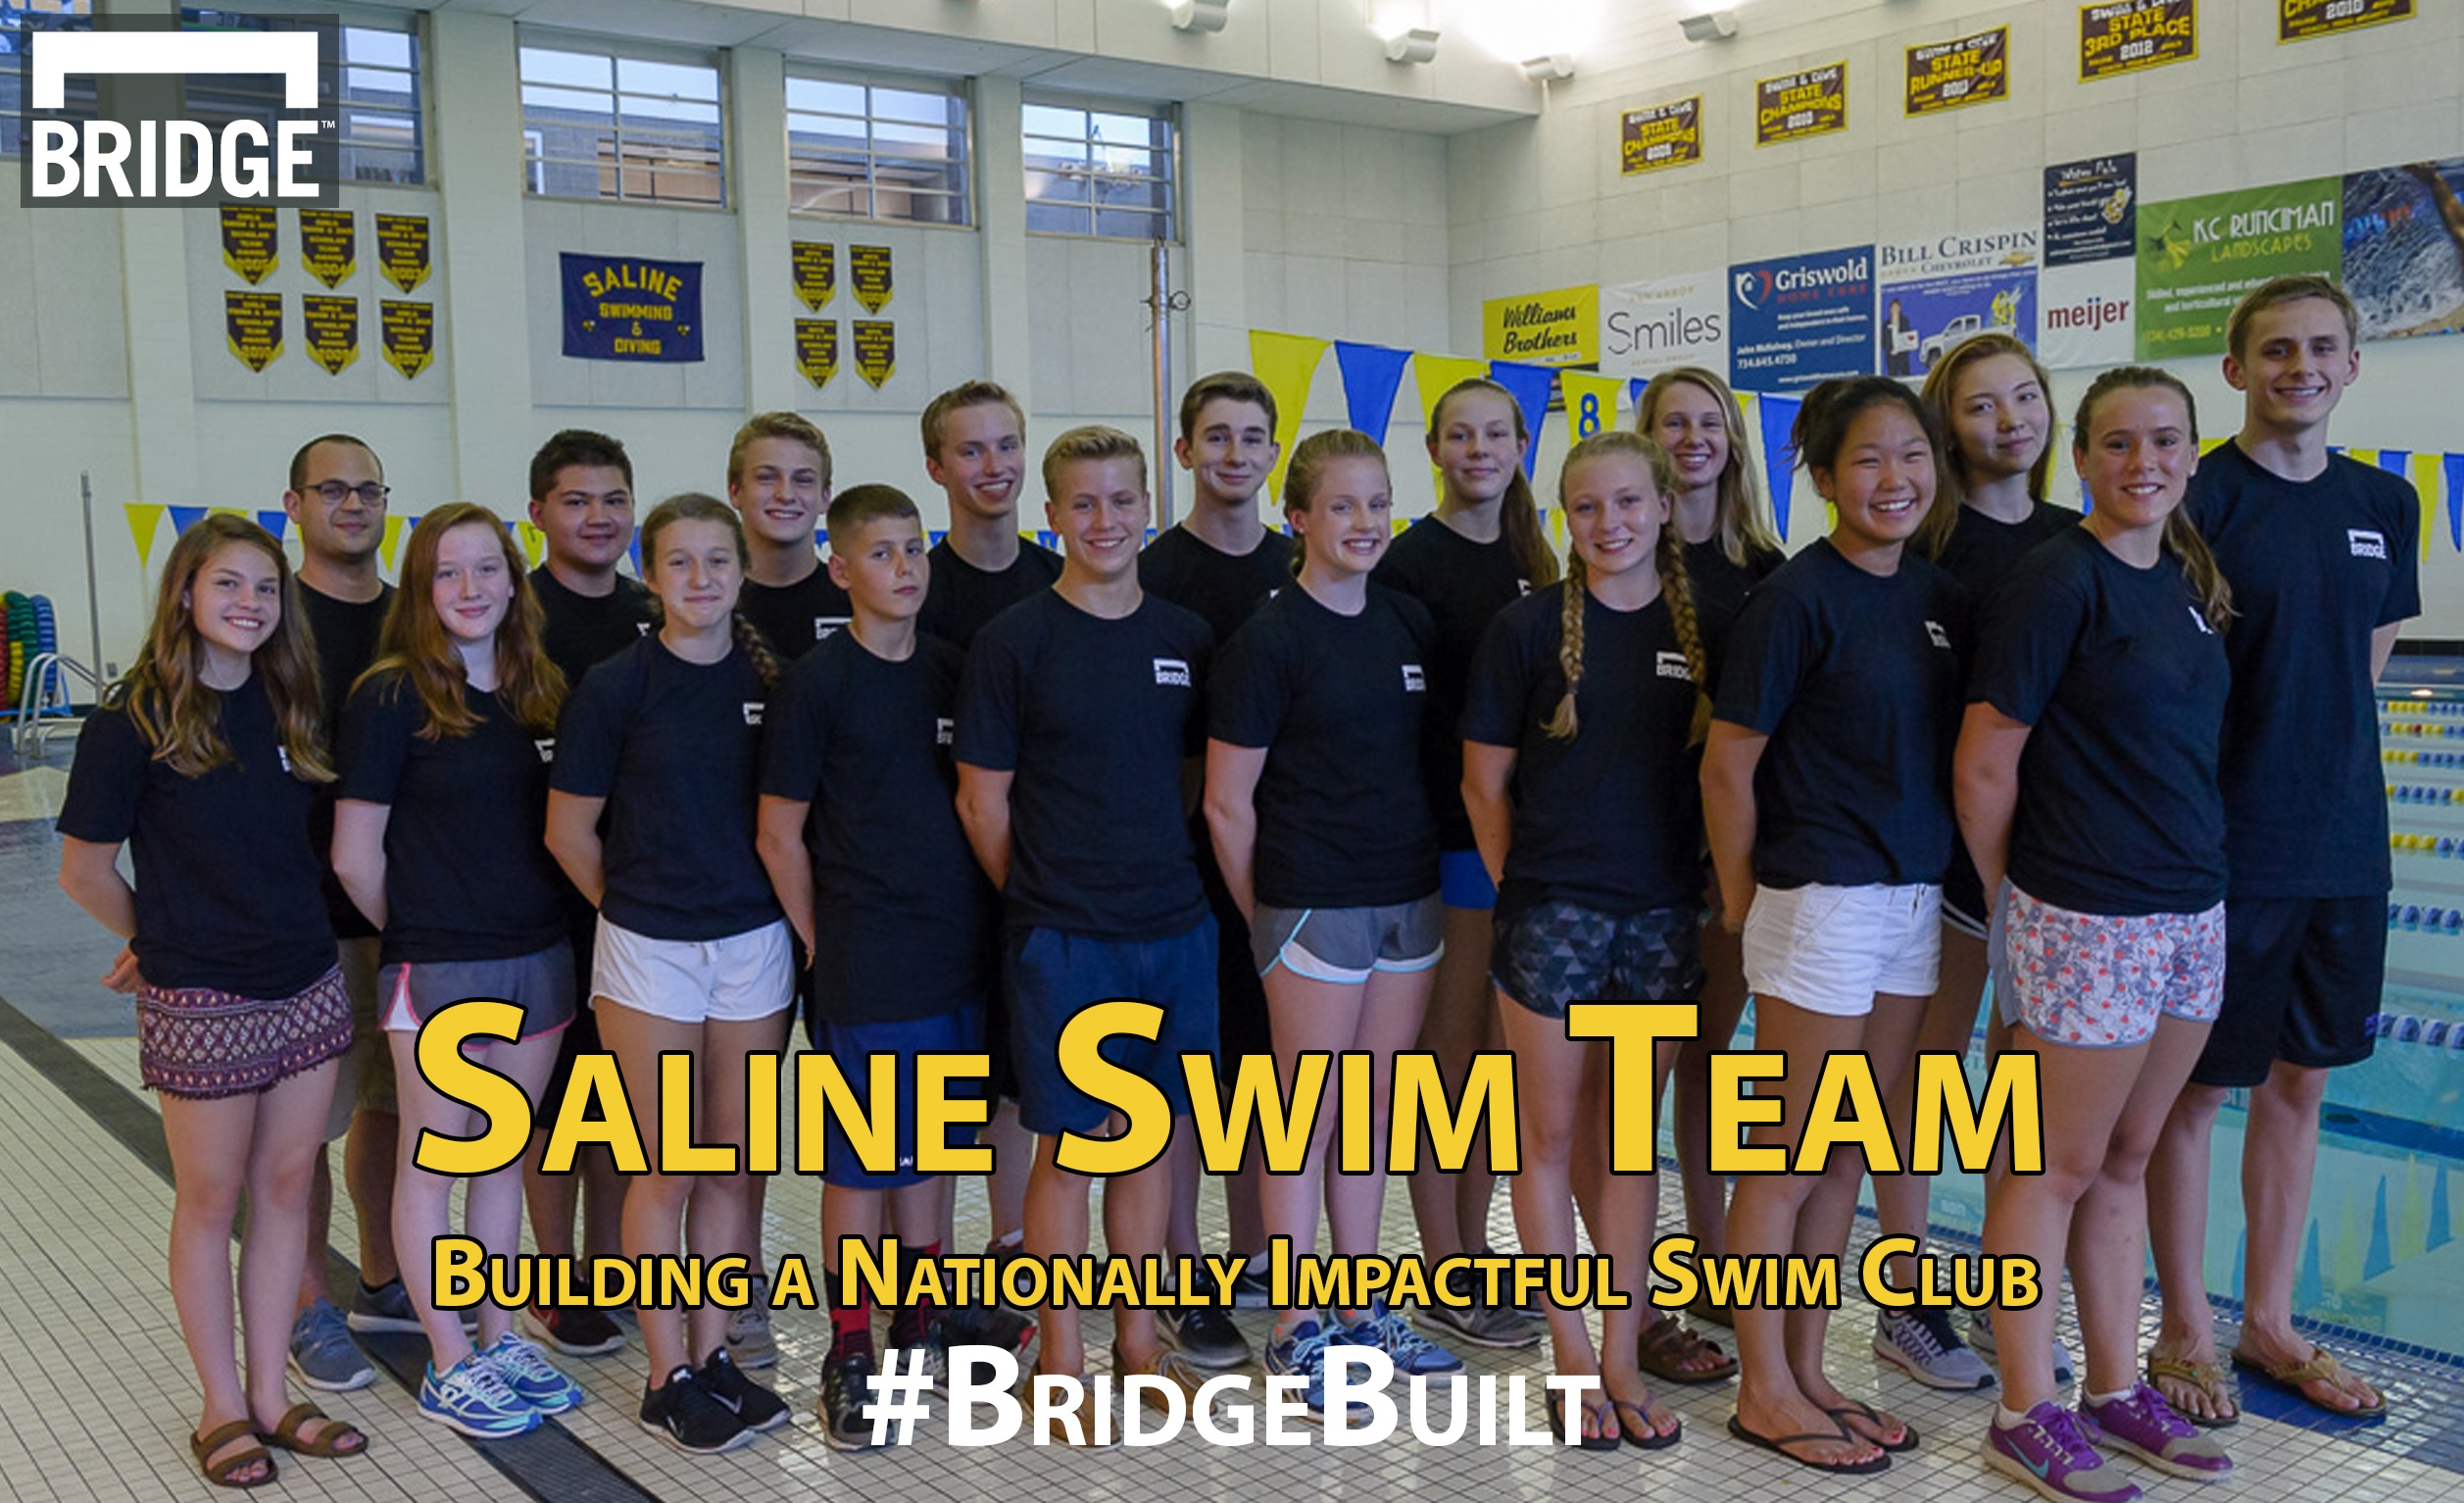 #BridgeBuilt Series: Saline Swim Team